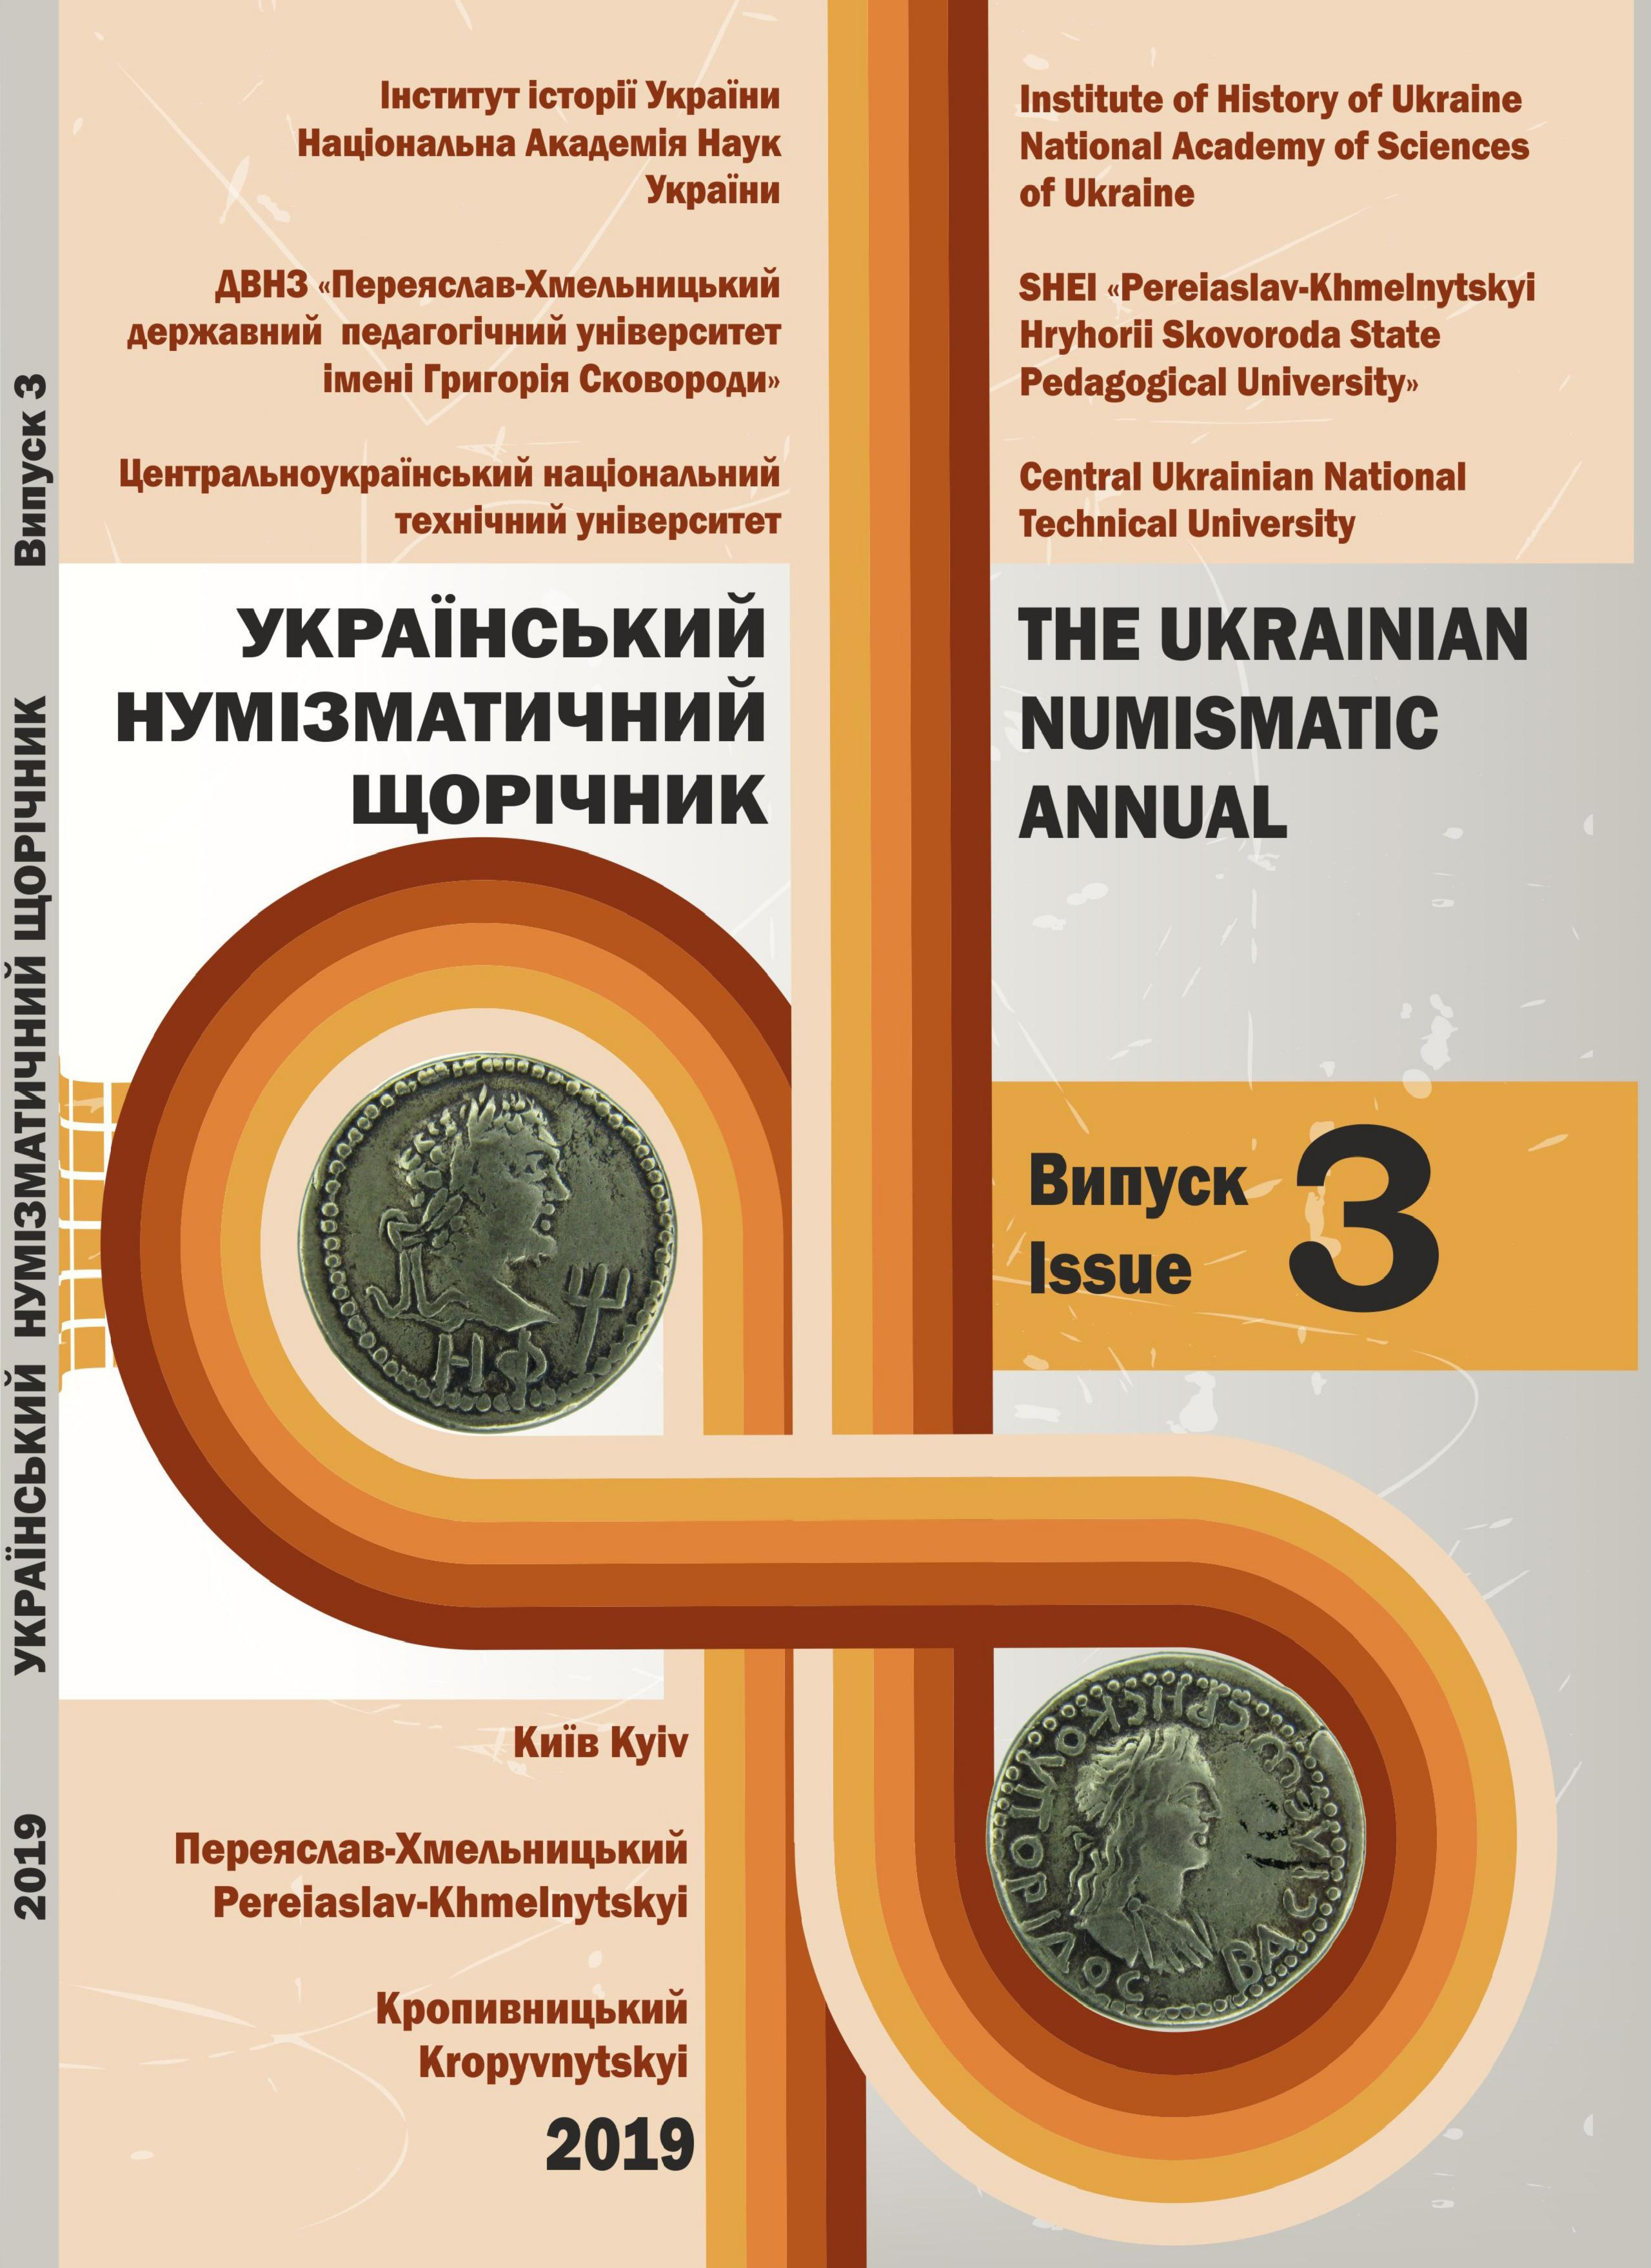 ISSUES ON NUMISMATICS IN THE DEPARTMENT OF LIBRARY COLLECTIONS AND HISTORICAL COLLECTIONS OF THE INSTITUTE OF BOOK SCIENCE OF THE NATIONAL LIBRARY OF UKRAINE V. I. VERNADSKY Cover Image